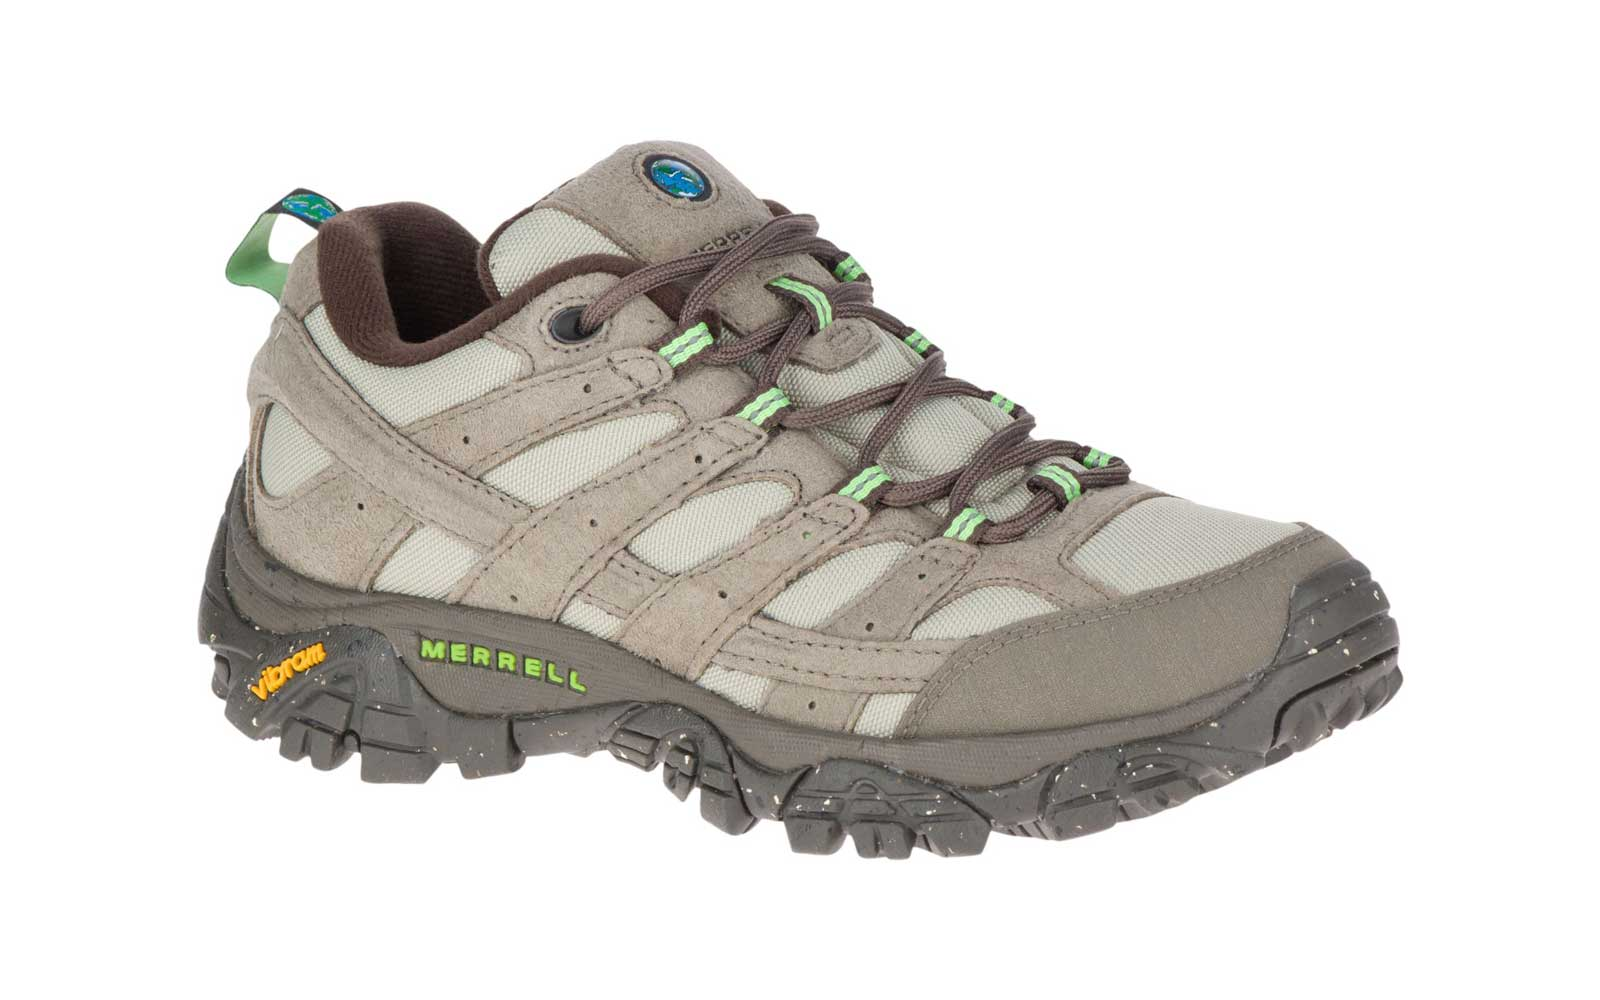 cfce334b18d26 The 20 Best Hiking Shoes and Boots for Women in 2019 | Travel + Leisure